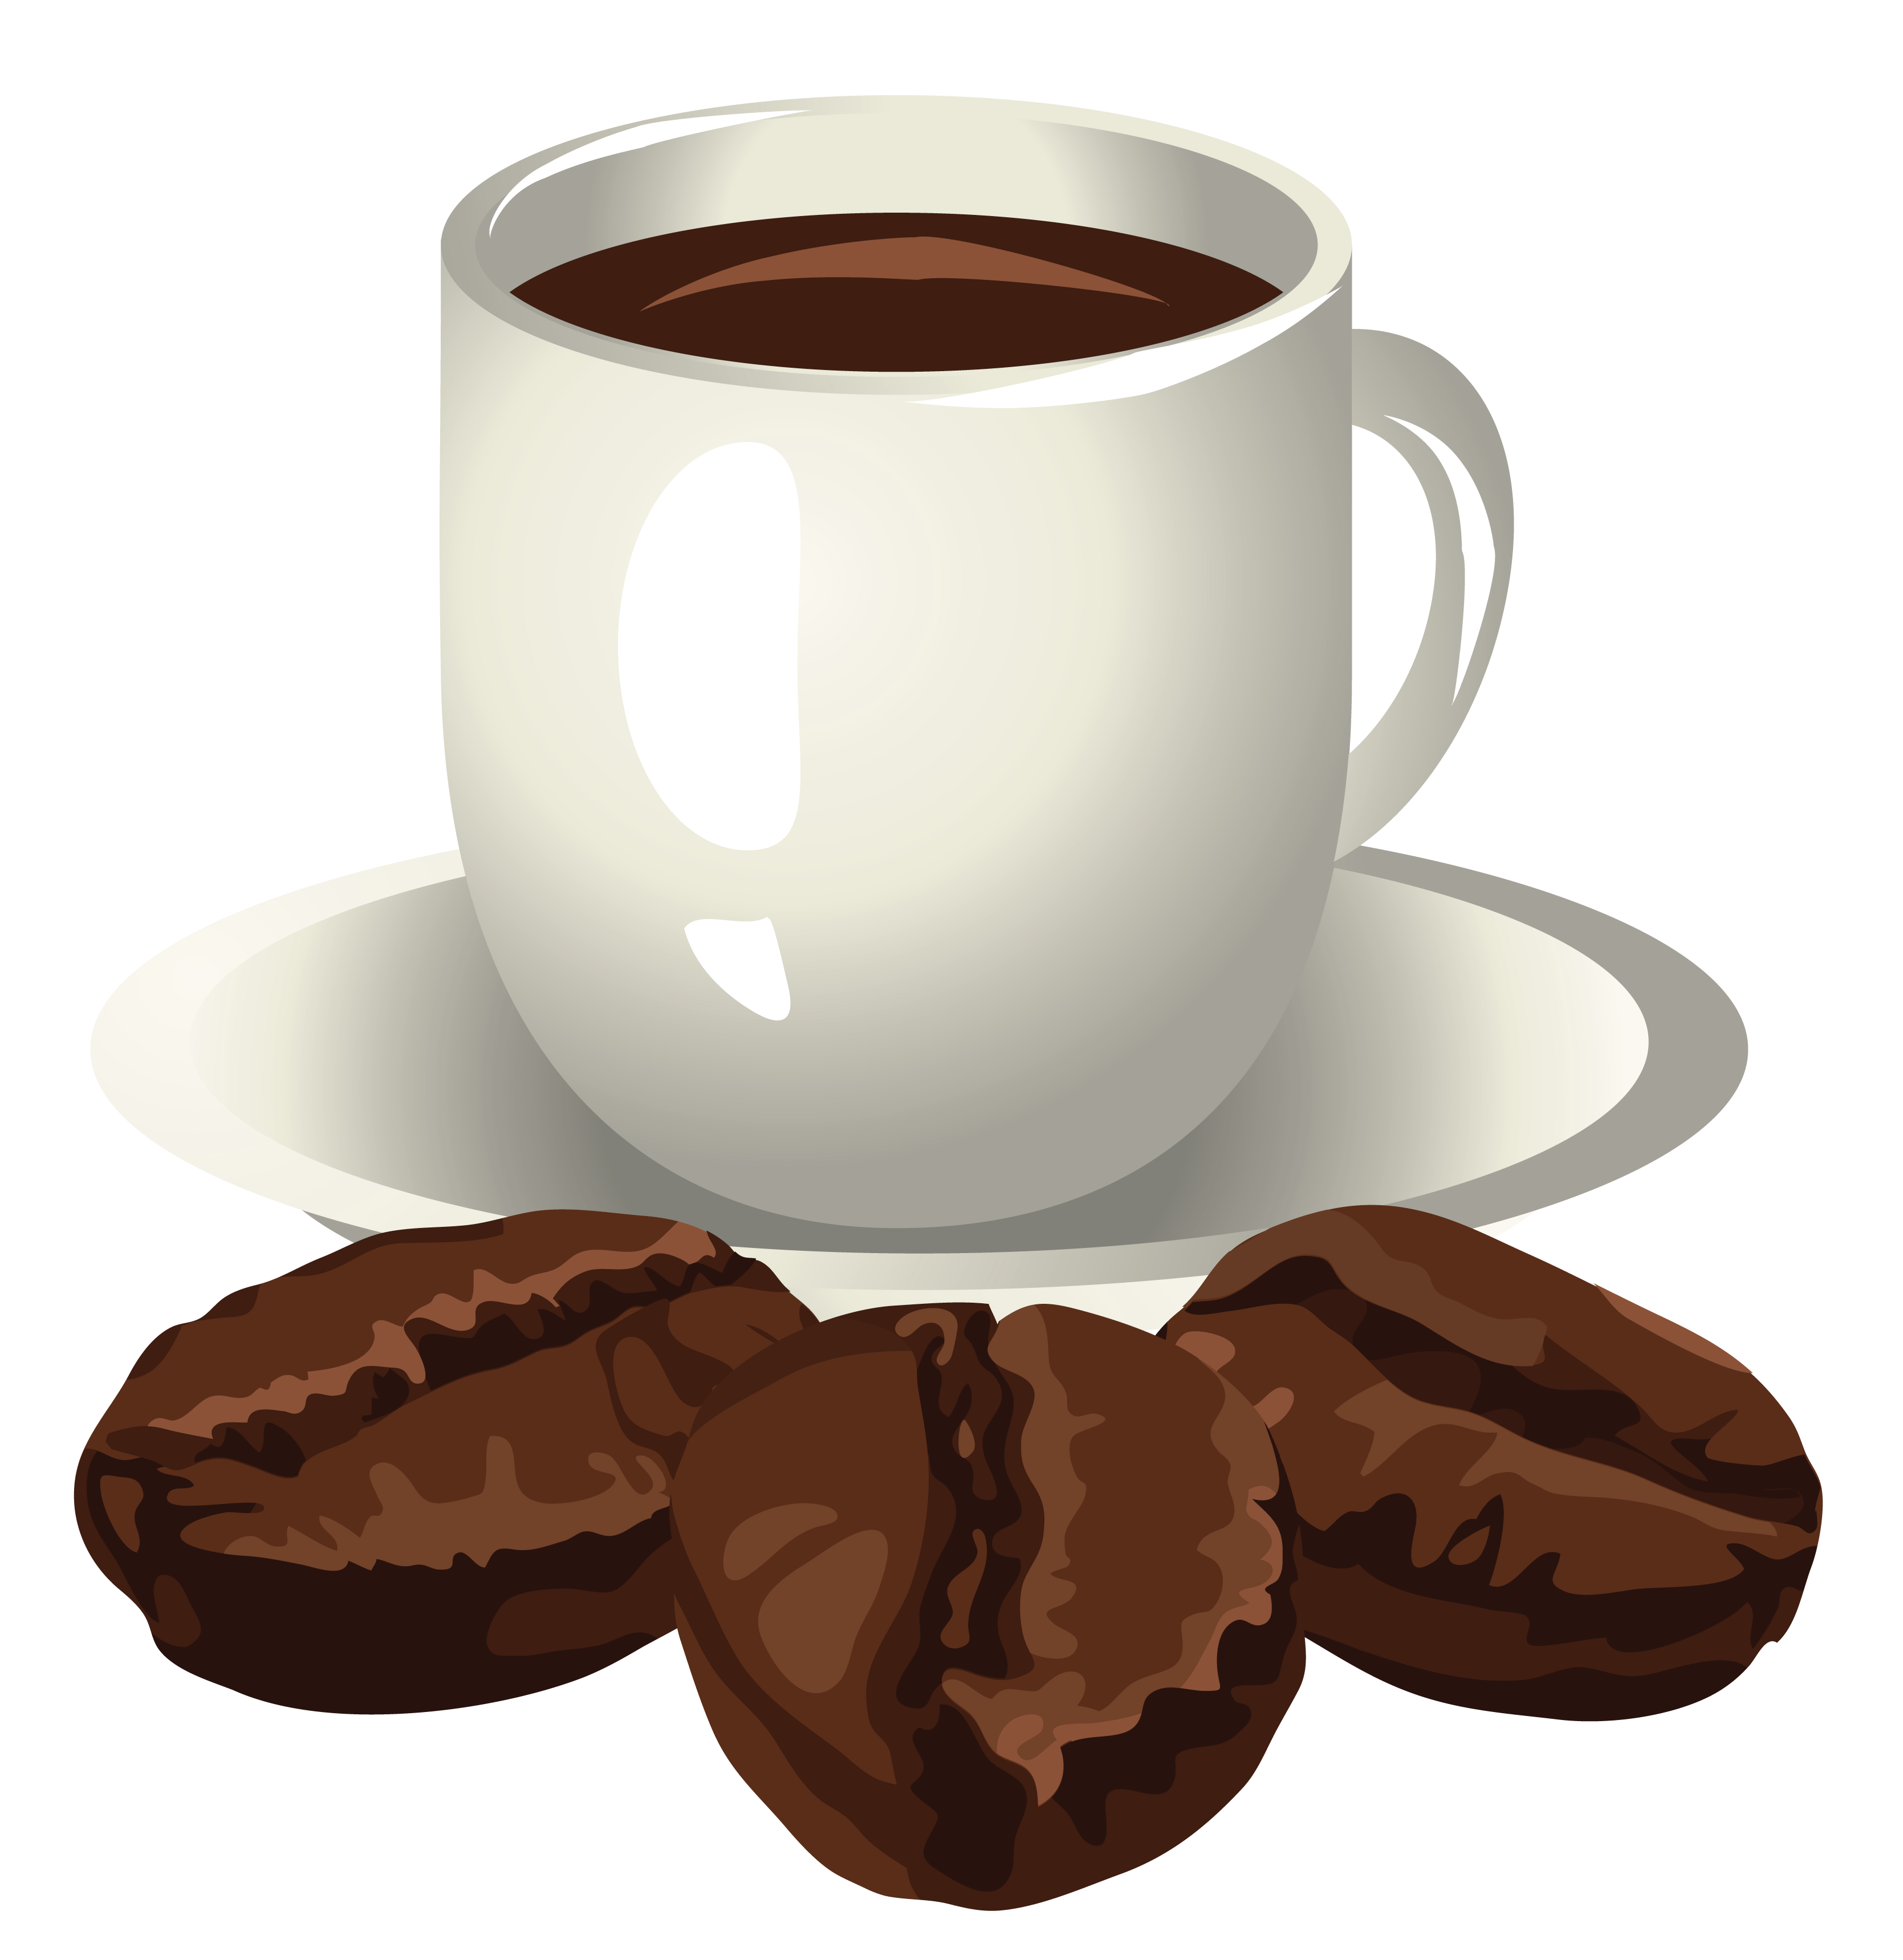 Clipart coffee. Cup png gallery yopriceville